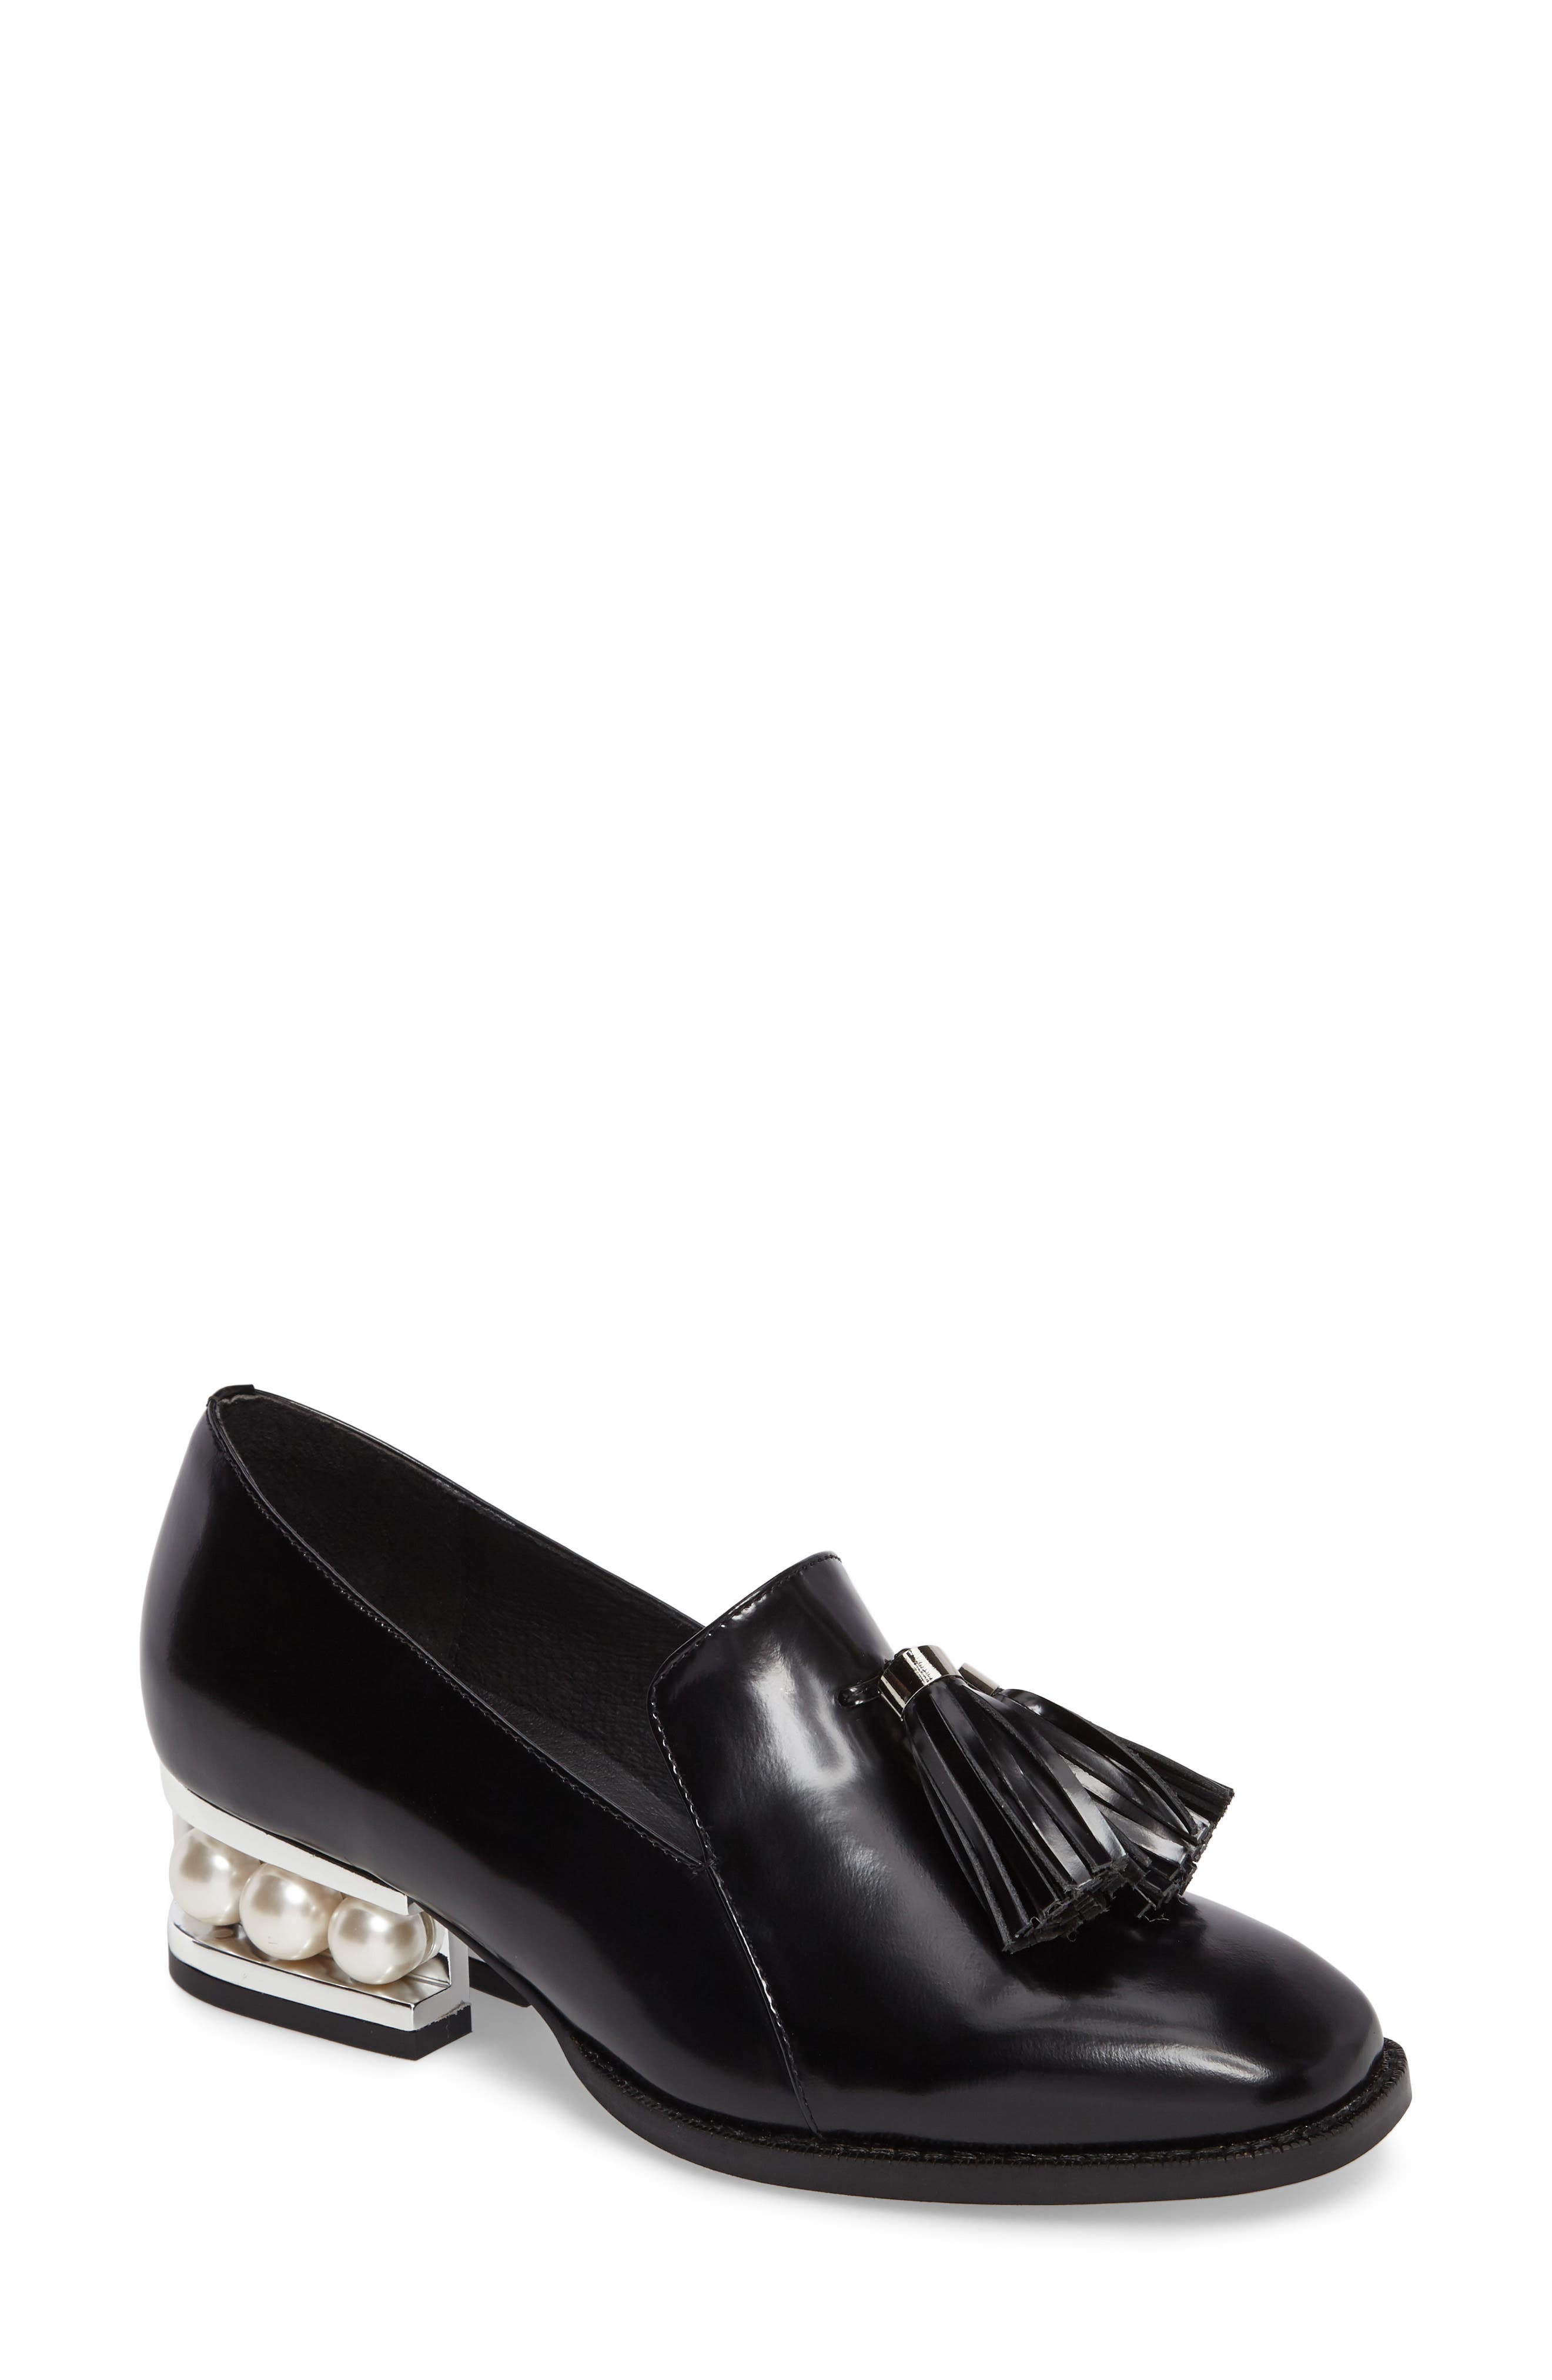 Jeffrey Campbell Lawford Pearly Heeled Loafer (Women)